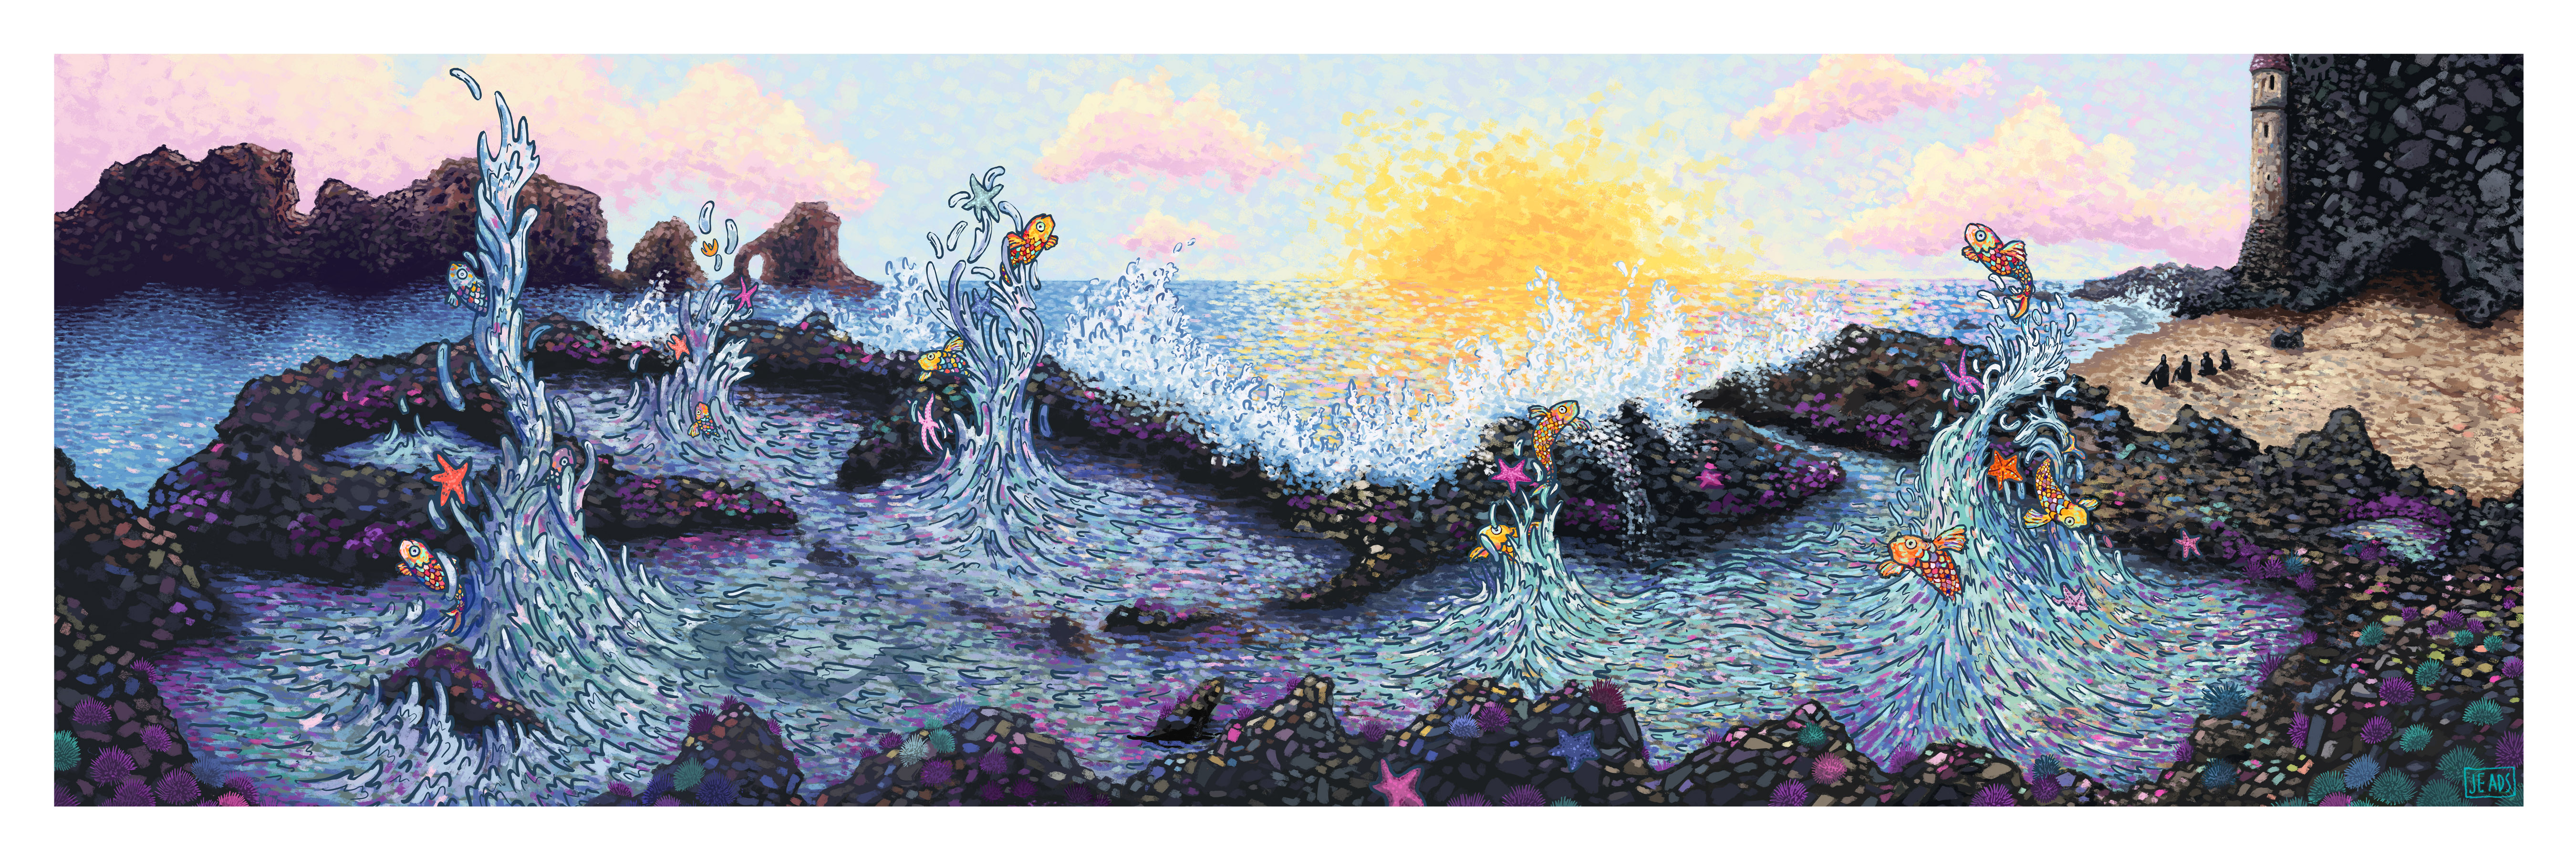 """Mermaid Weather"" by James R Eads.  12"" x 36"" Giclee.  Timed edition S/N.  $40"